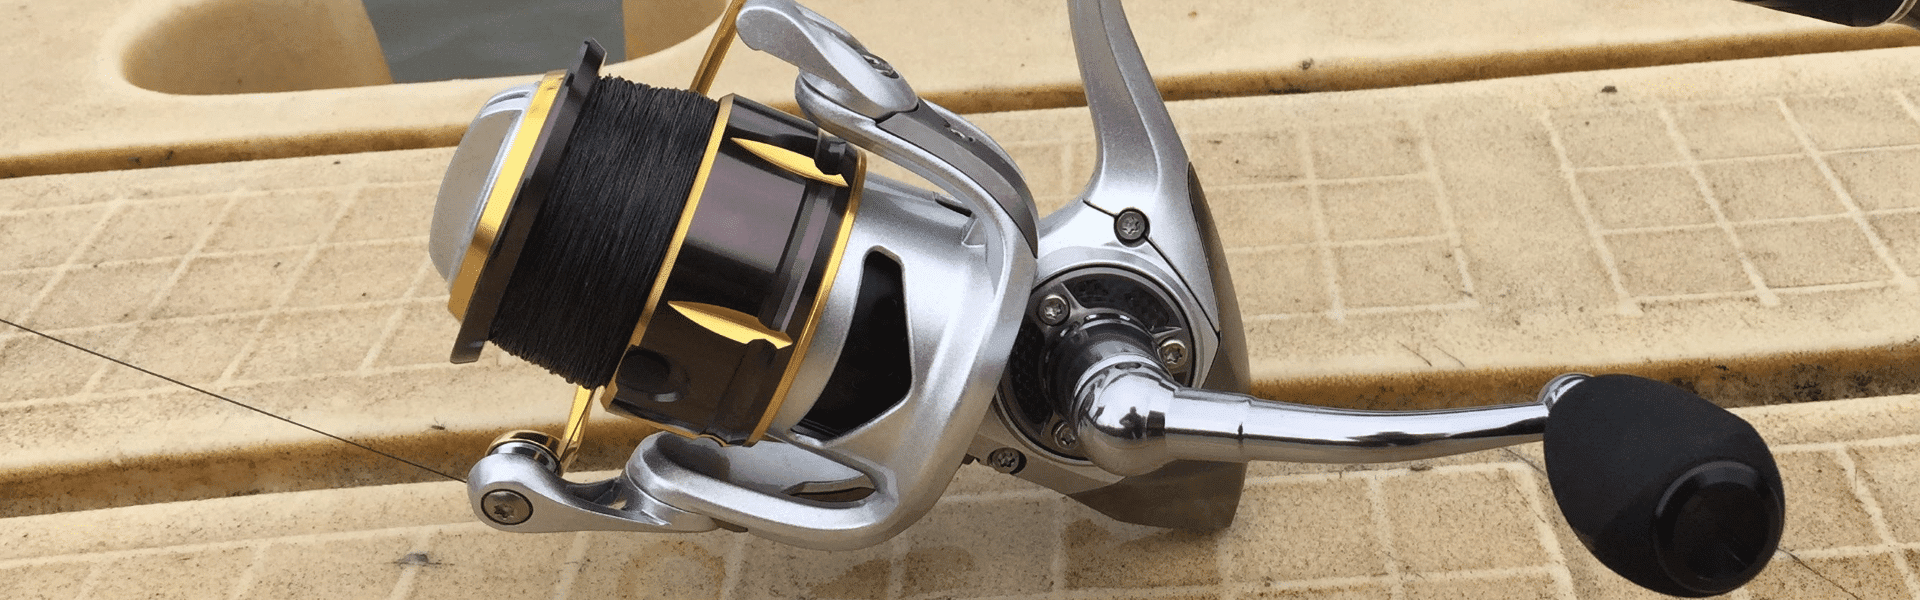 What are Fishing Reels